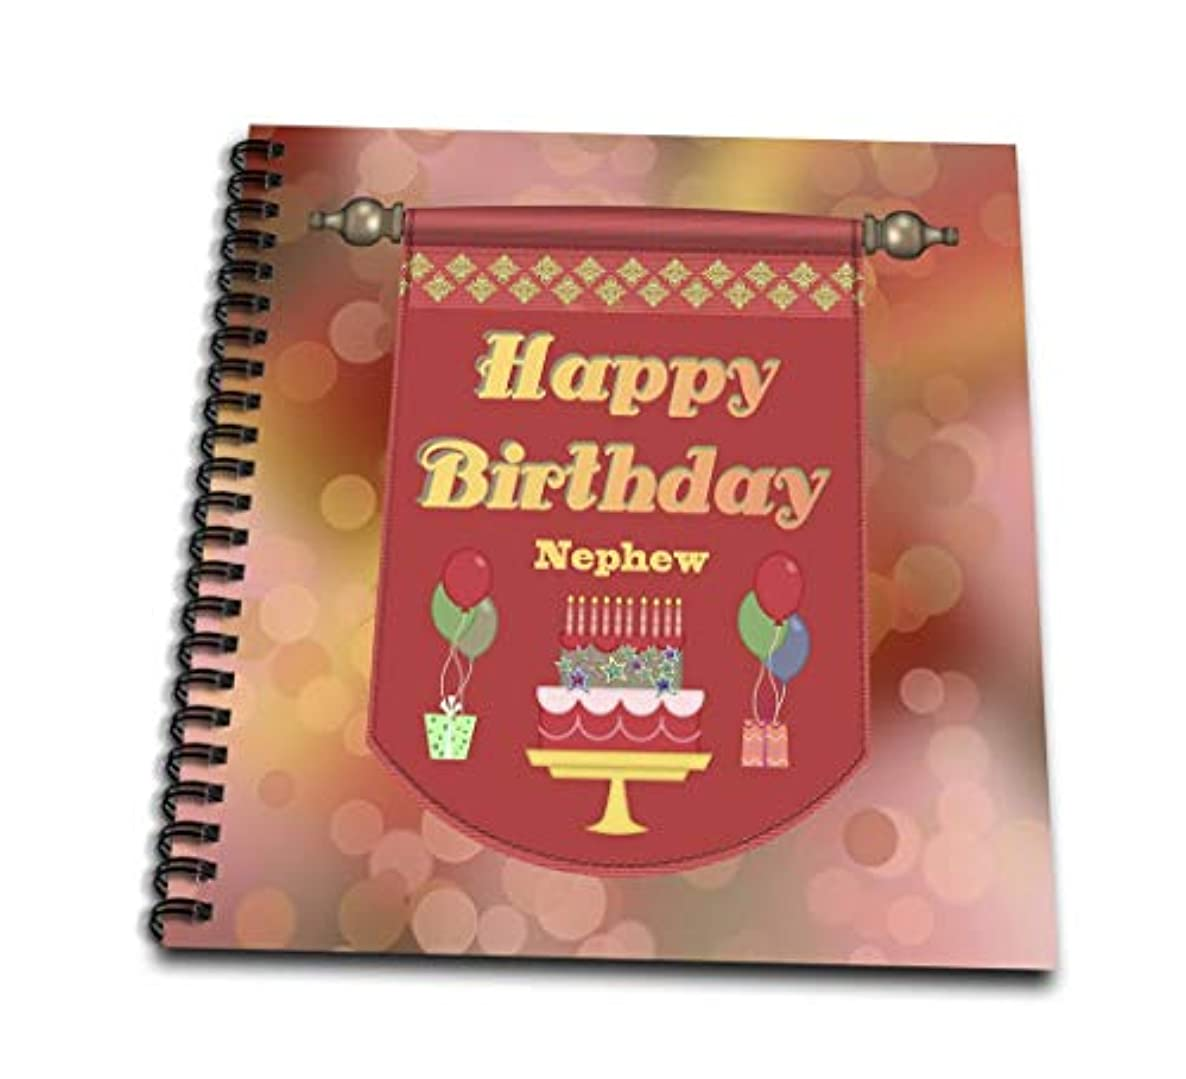 3dRose db_186396_2 Happy Birthday Nephew Banner, Cake with Gifts and Balloons Memory Book, 12 x 12